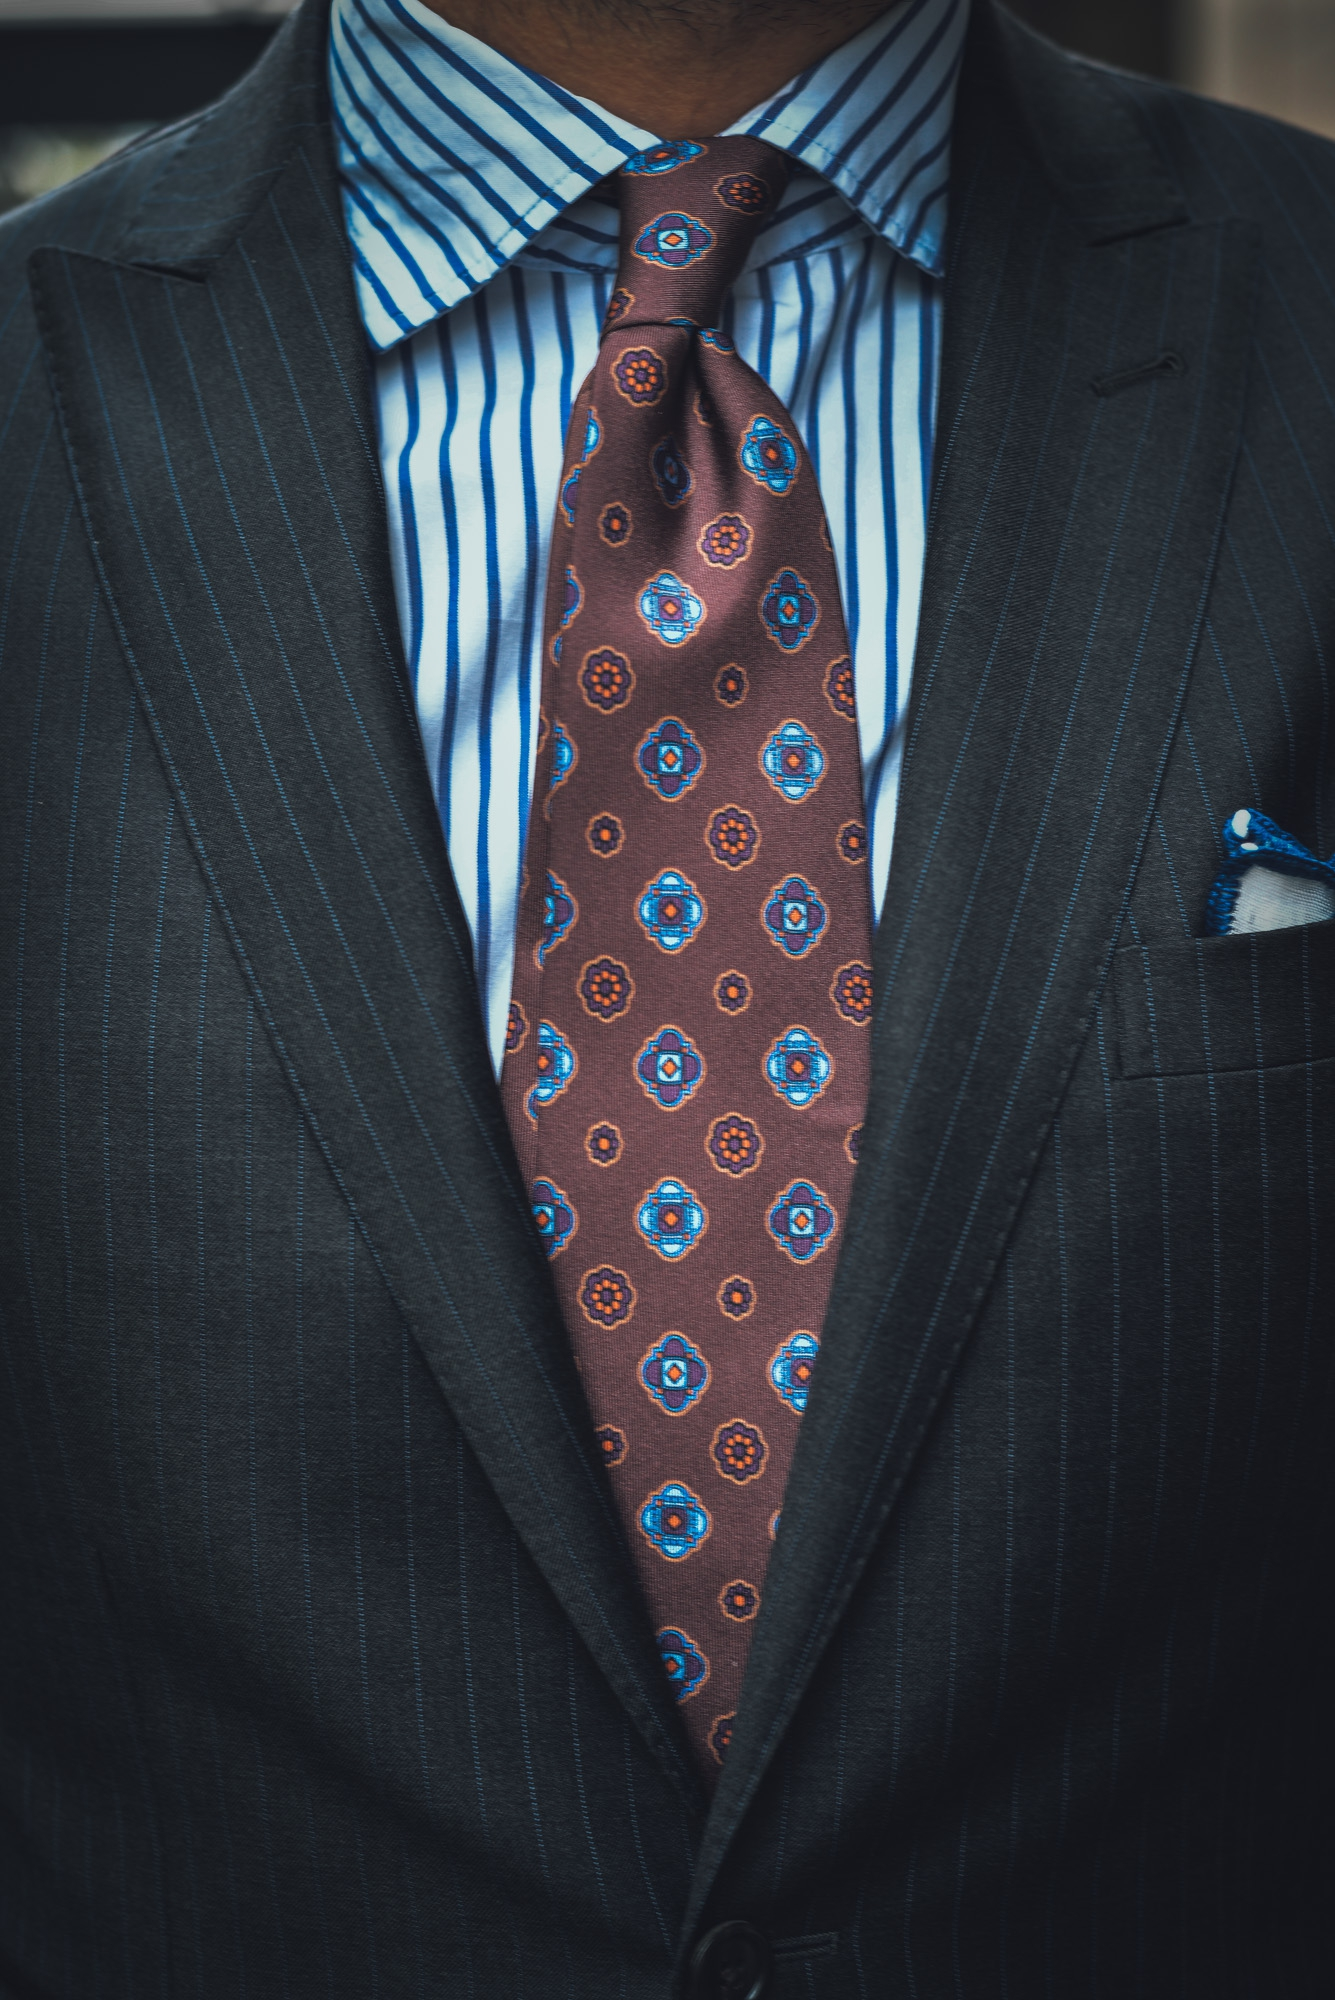 Pinstripe Suit by Lanieri Review of a suit made from a Loro Piana Super 130's fabric